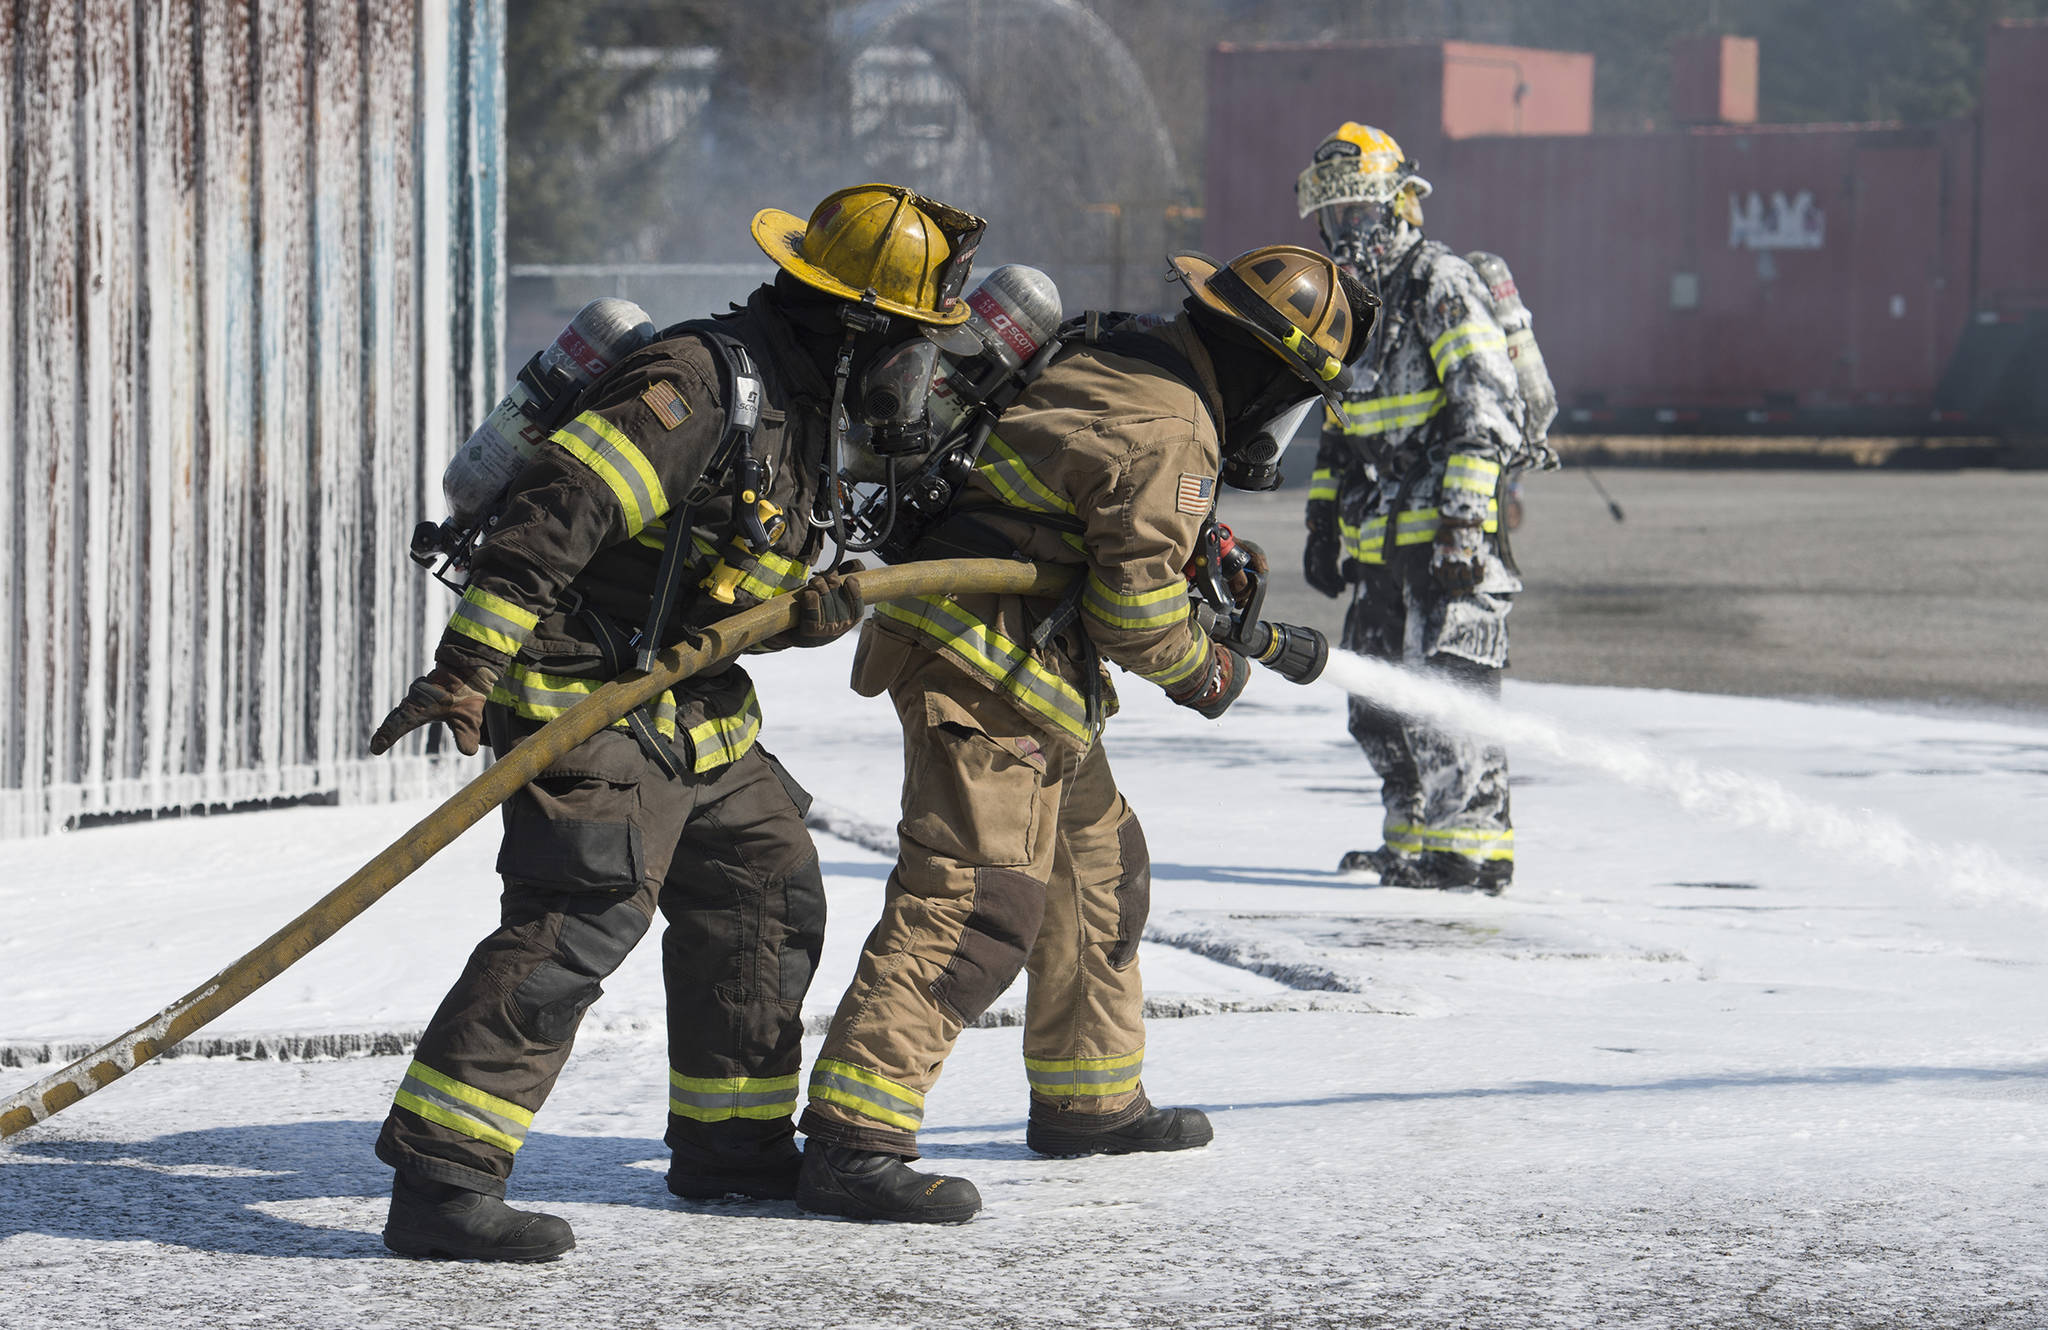 In this file photo taken April 13, 2017, Brady Fink, center, and Dave Edmunds, left, are watched by Engineer Lance Lawhorne as they update their airport rescue firefighting skills at the Hagevig Regional Fire Training Center. A potentially harmful chemical was detected at the center after soil and water testing at the center. (Michael Penn | Juneau Empire File)